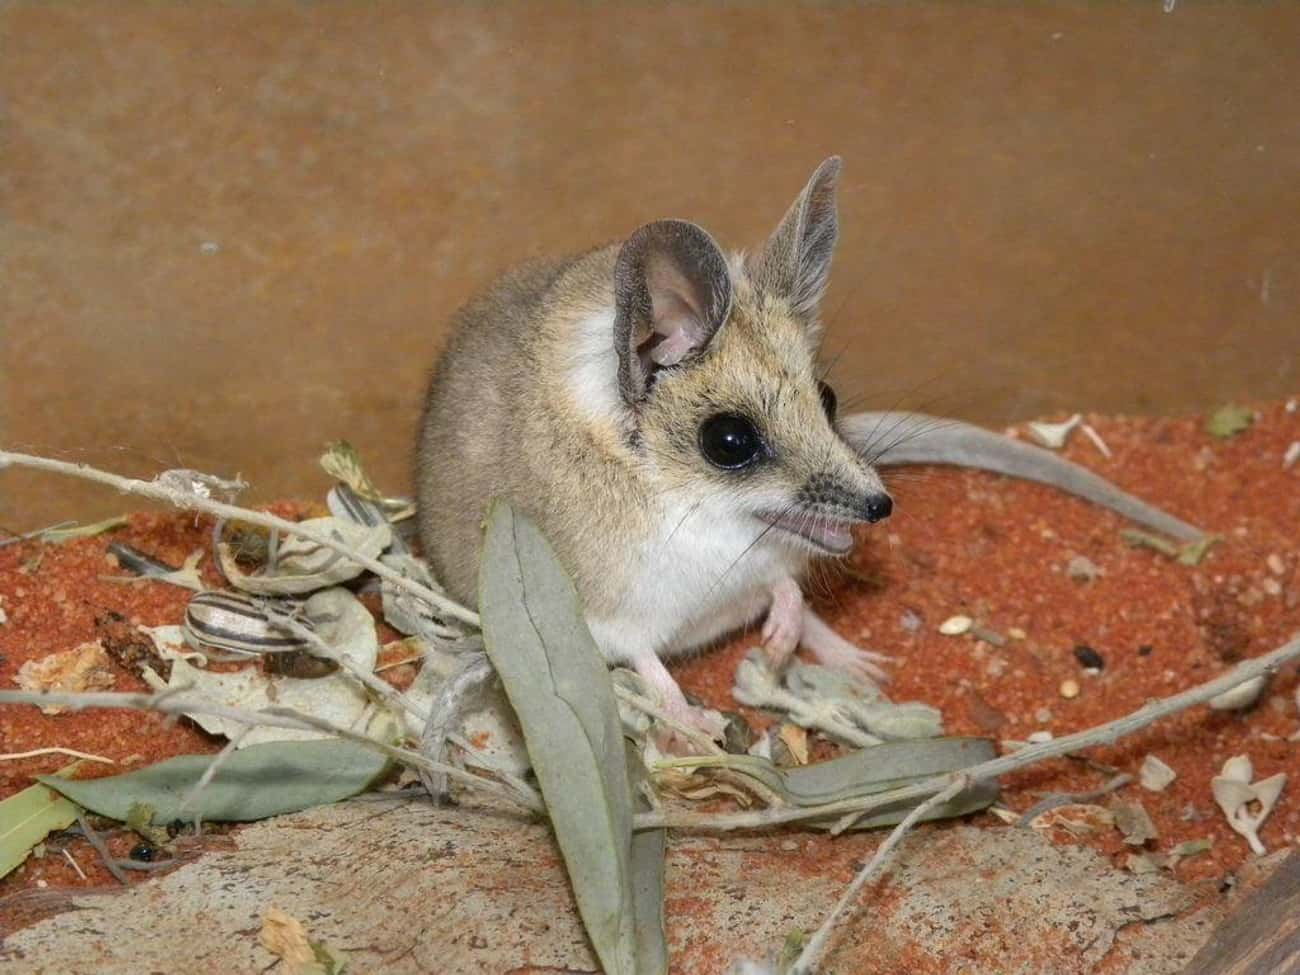 The Fat-Tailed Dunnart Is A Ti is listed (or ranked) 4 on the list 14 Of The Cutest Marsupials Most People Have Never Heard Of